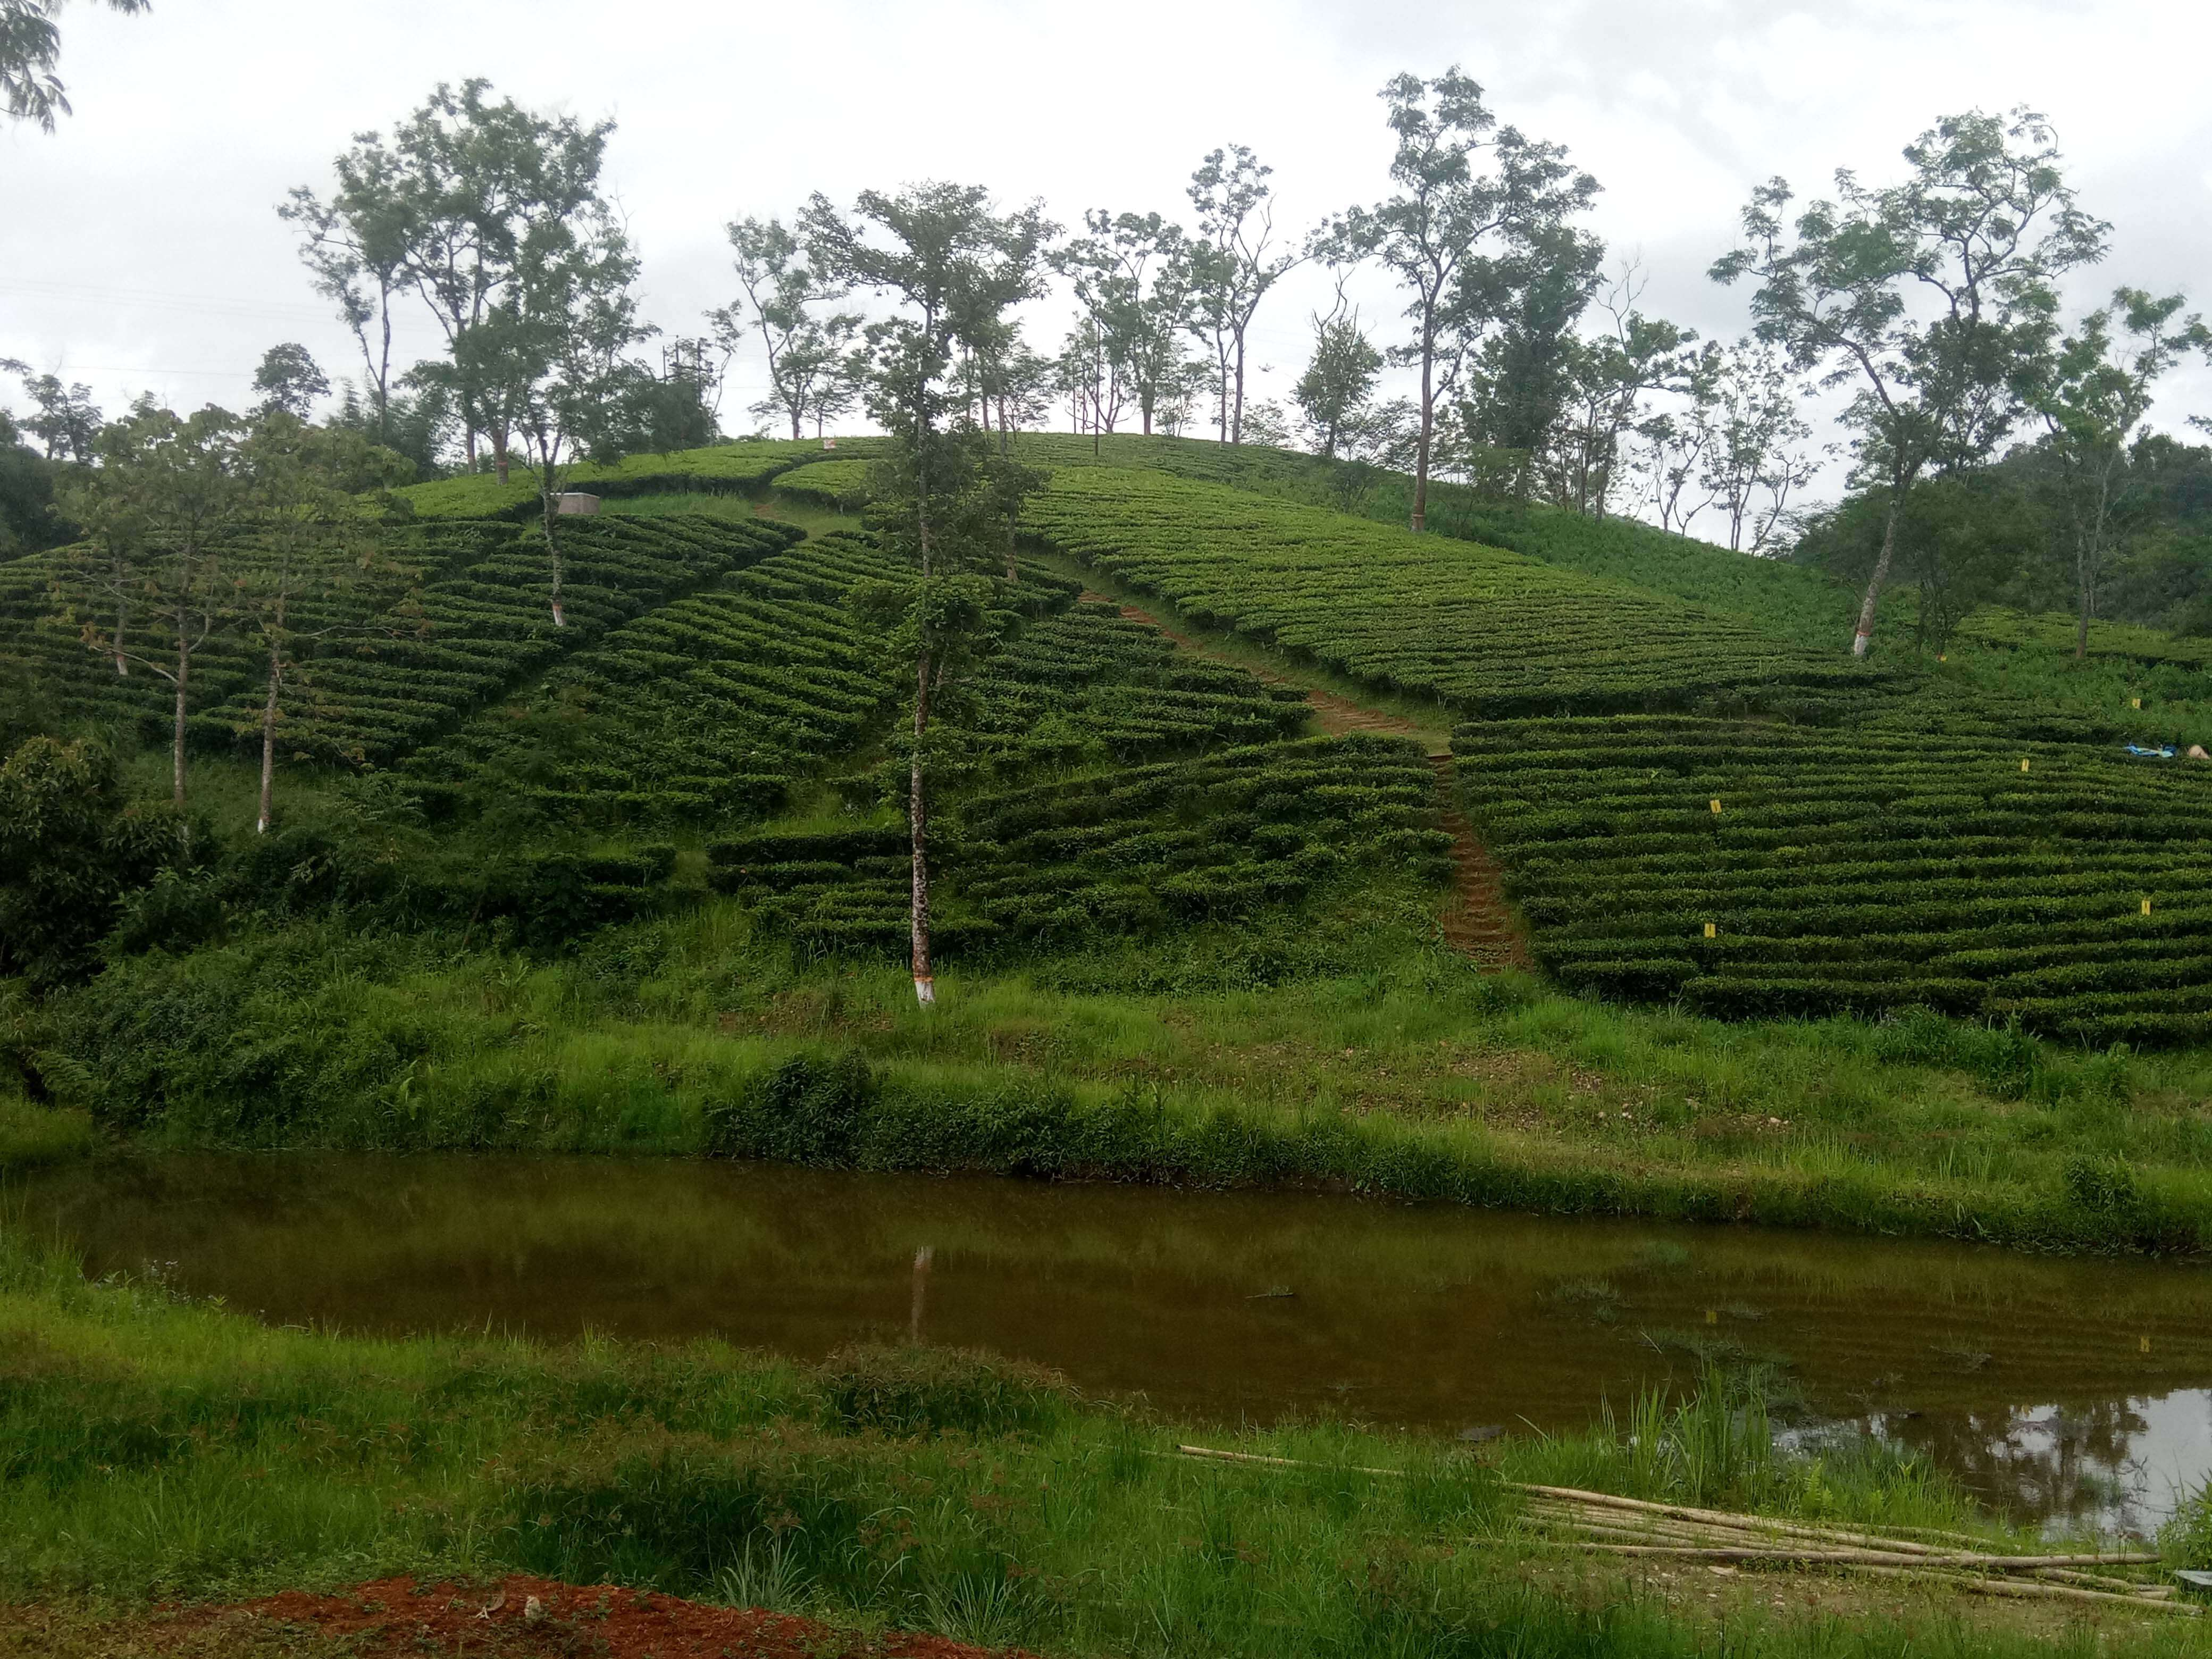 'Tea centre producing quality organic tea'